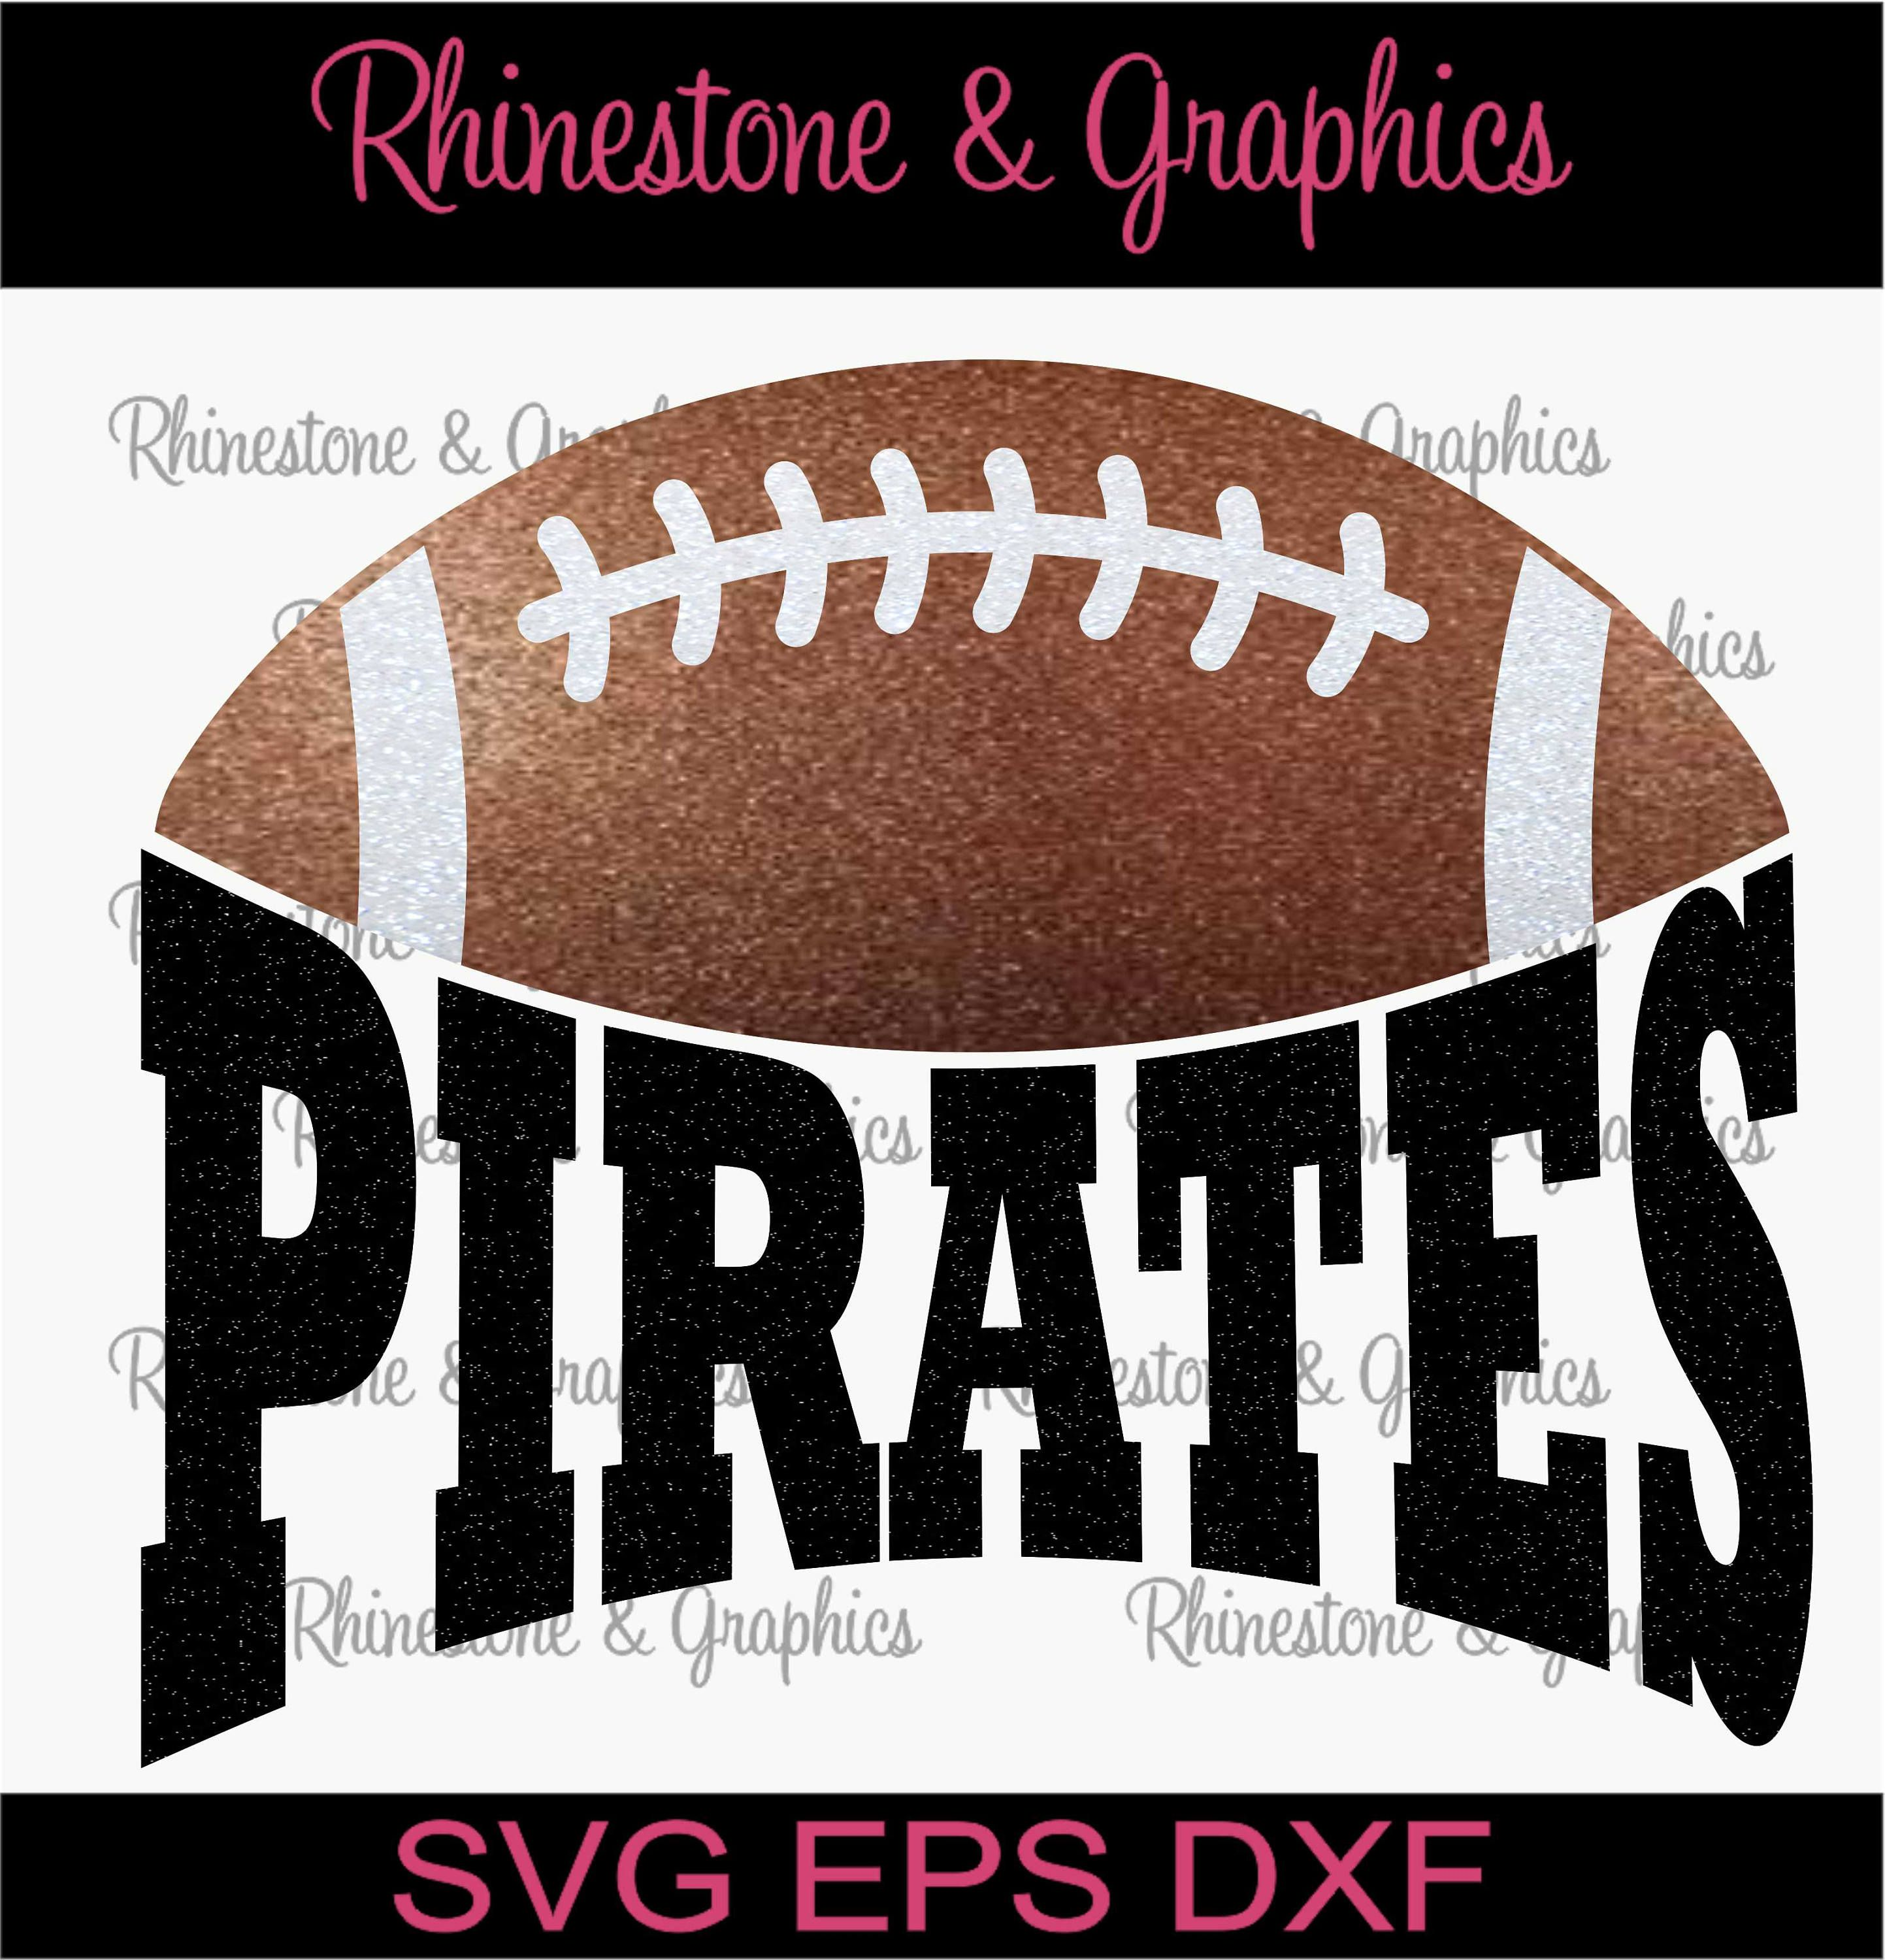 eefe04d1de0dc Pirates Football Design Pattern Graphic Design Instant Download EPS SVG DXF  Cutting Files Cameo by RhinestoneandGraphic on Etsy